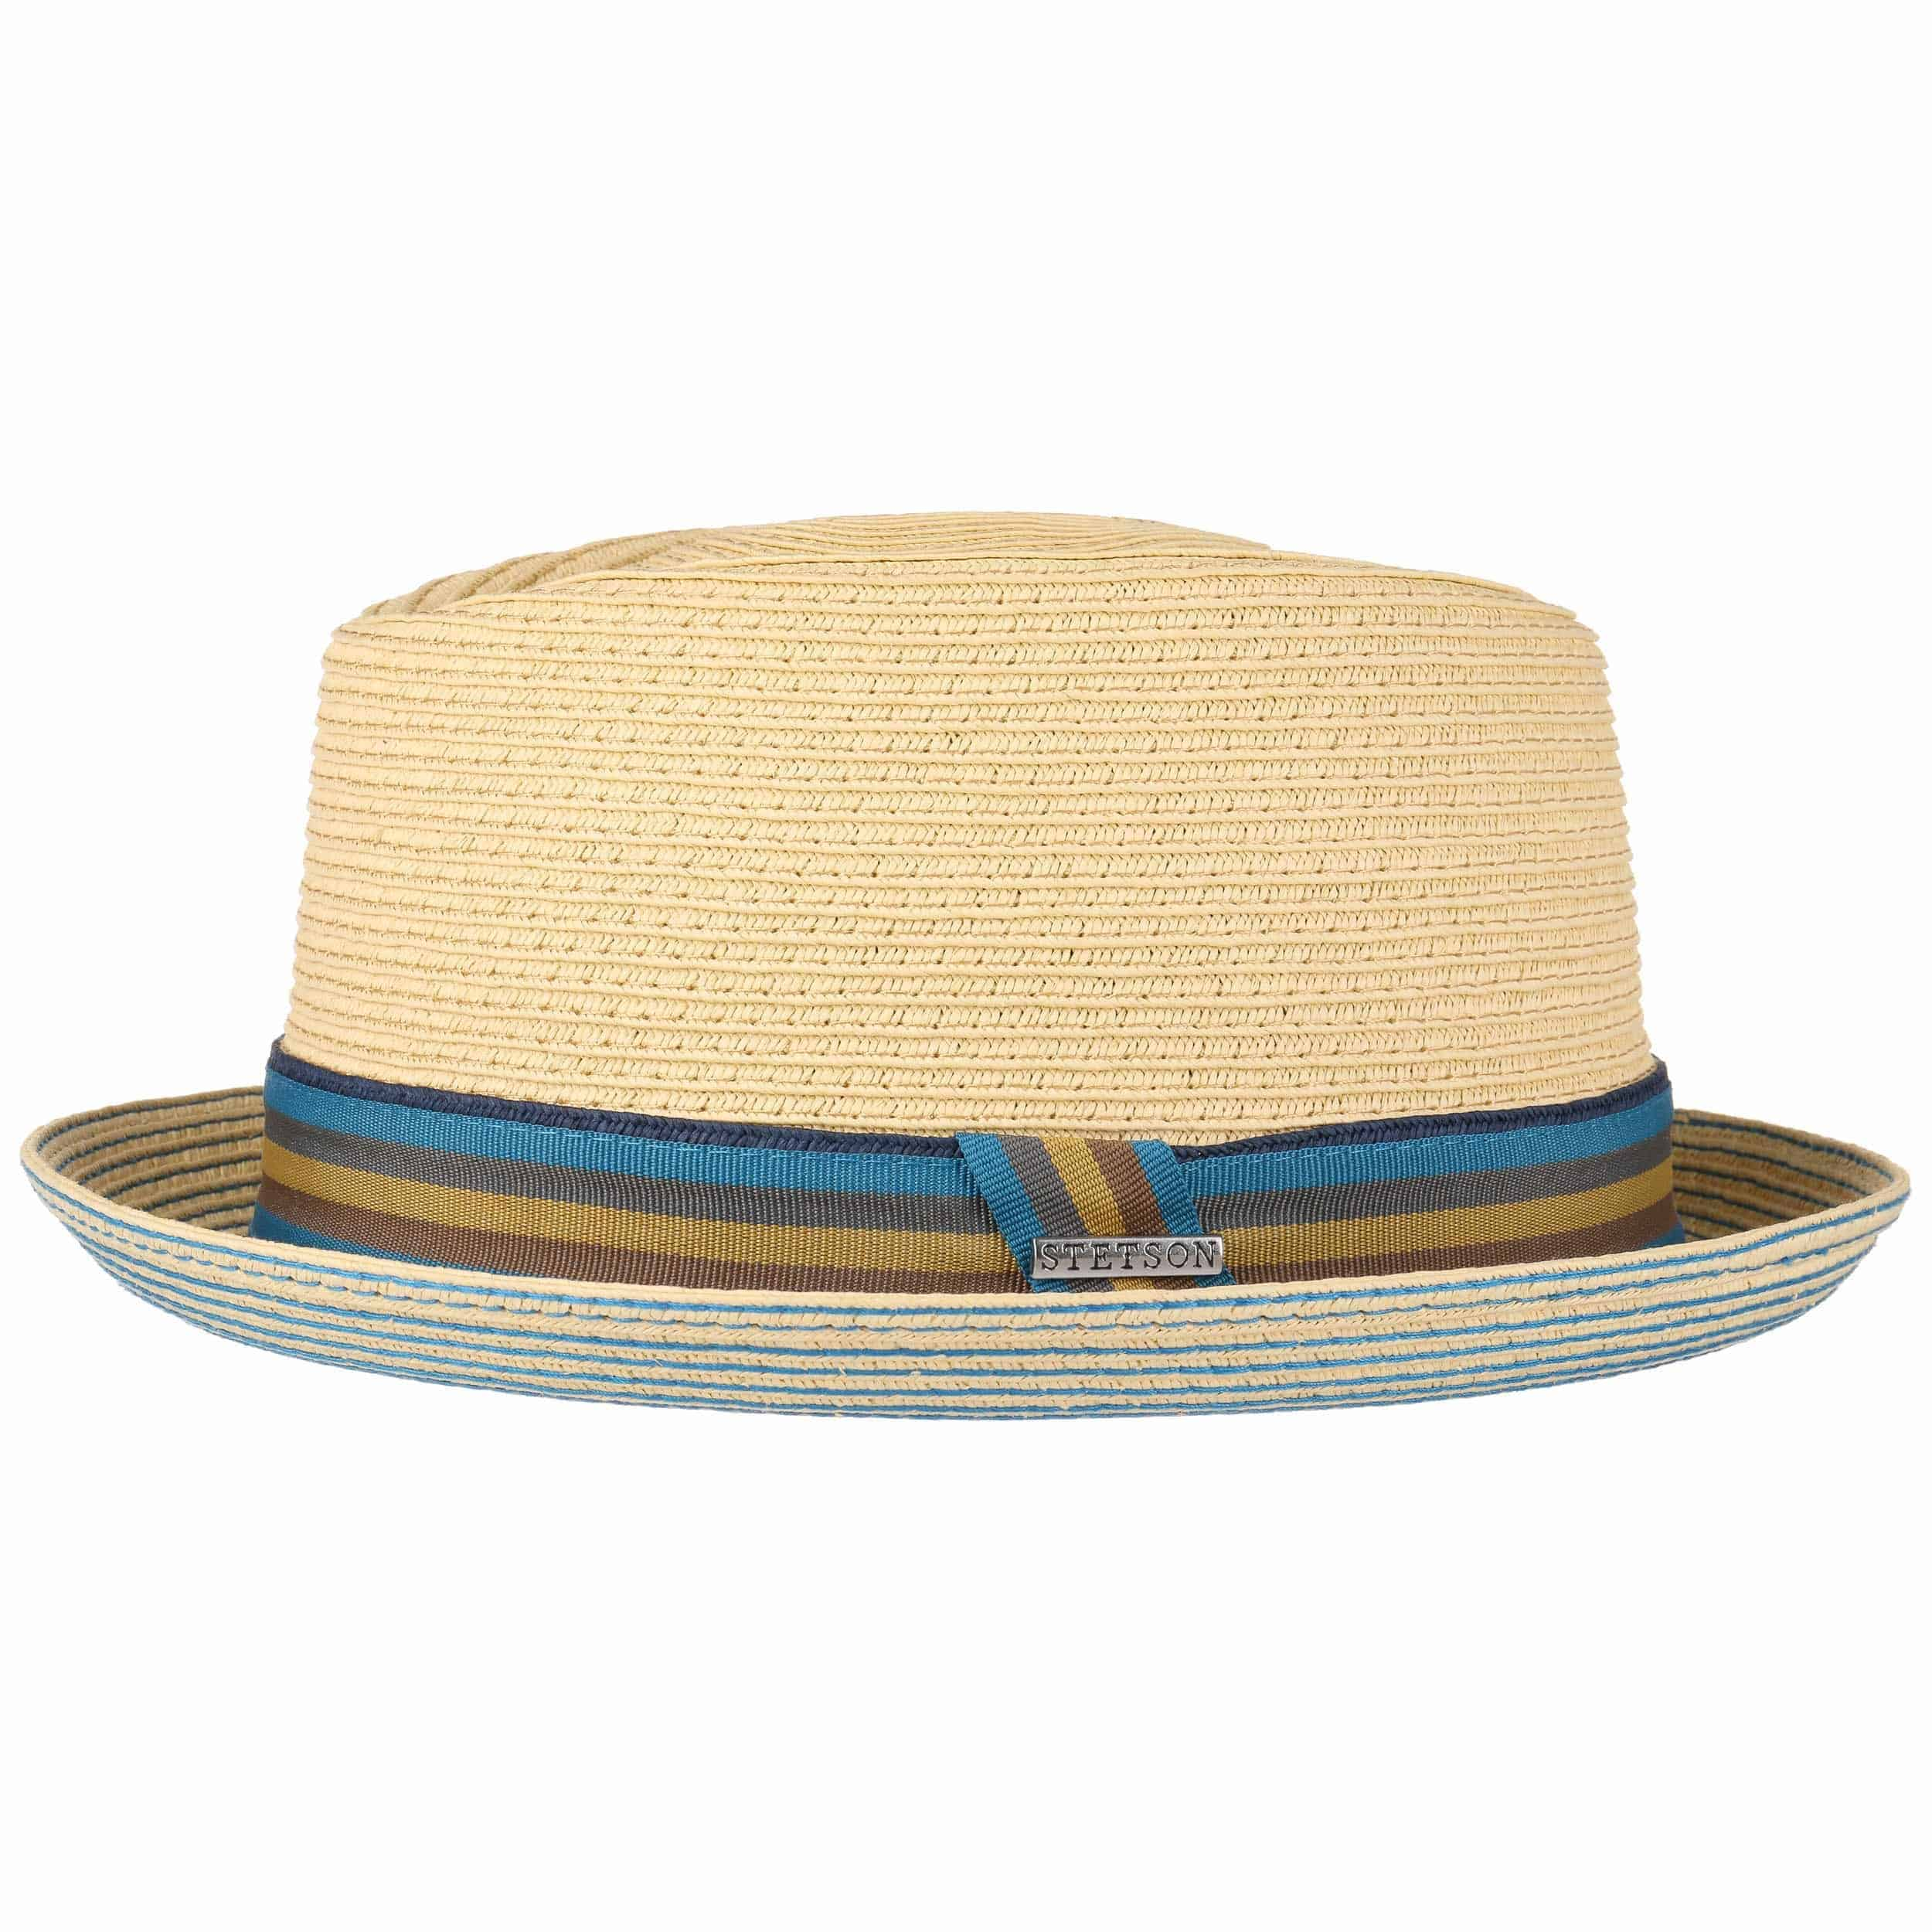 Online Shop Clearance Best Sale Pico Pork Pie Cloth Hat by Stetson Sun hats Stetson Sast Online 3mlrcKX